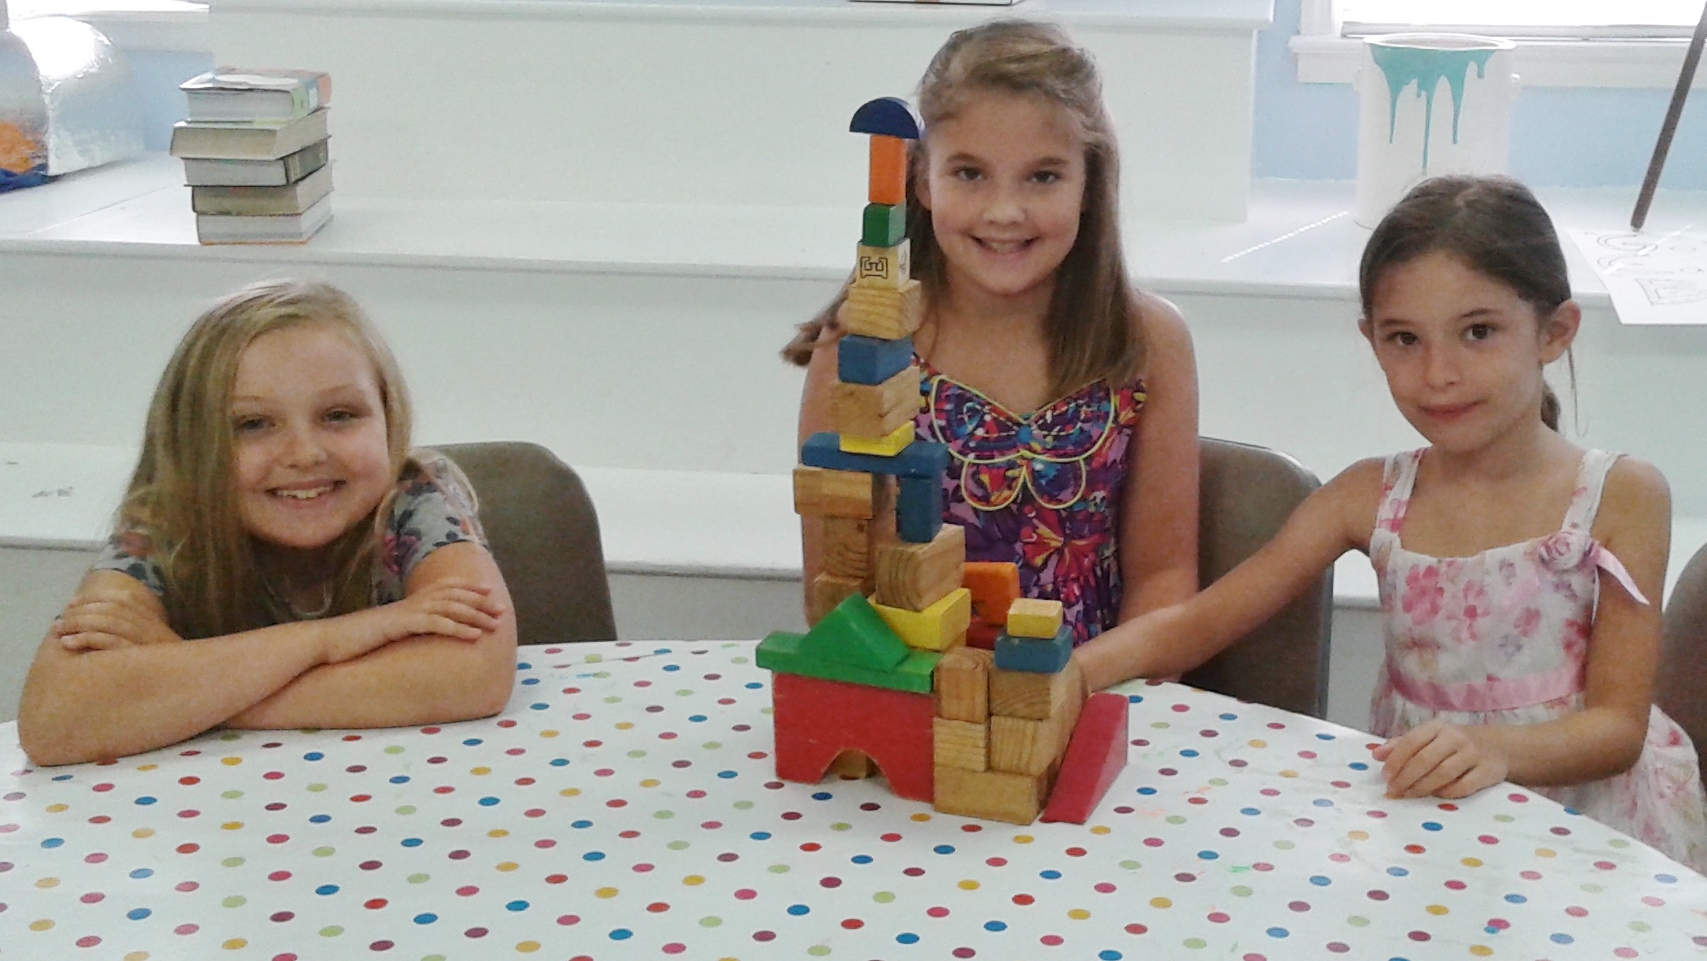 The girls have a beautiful tower.